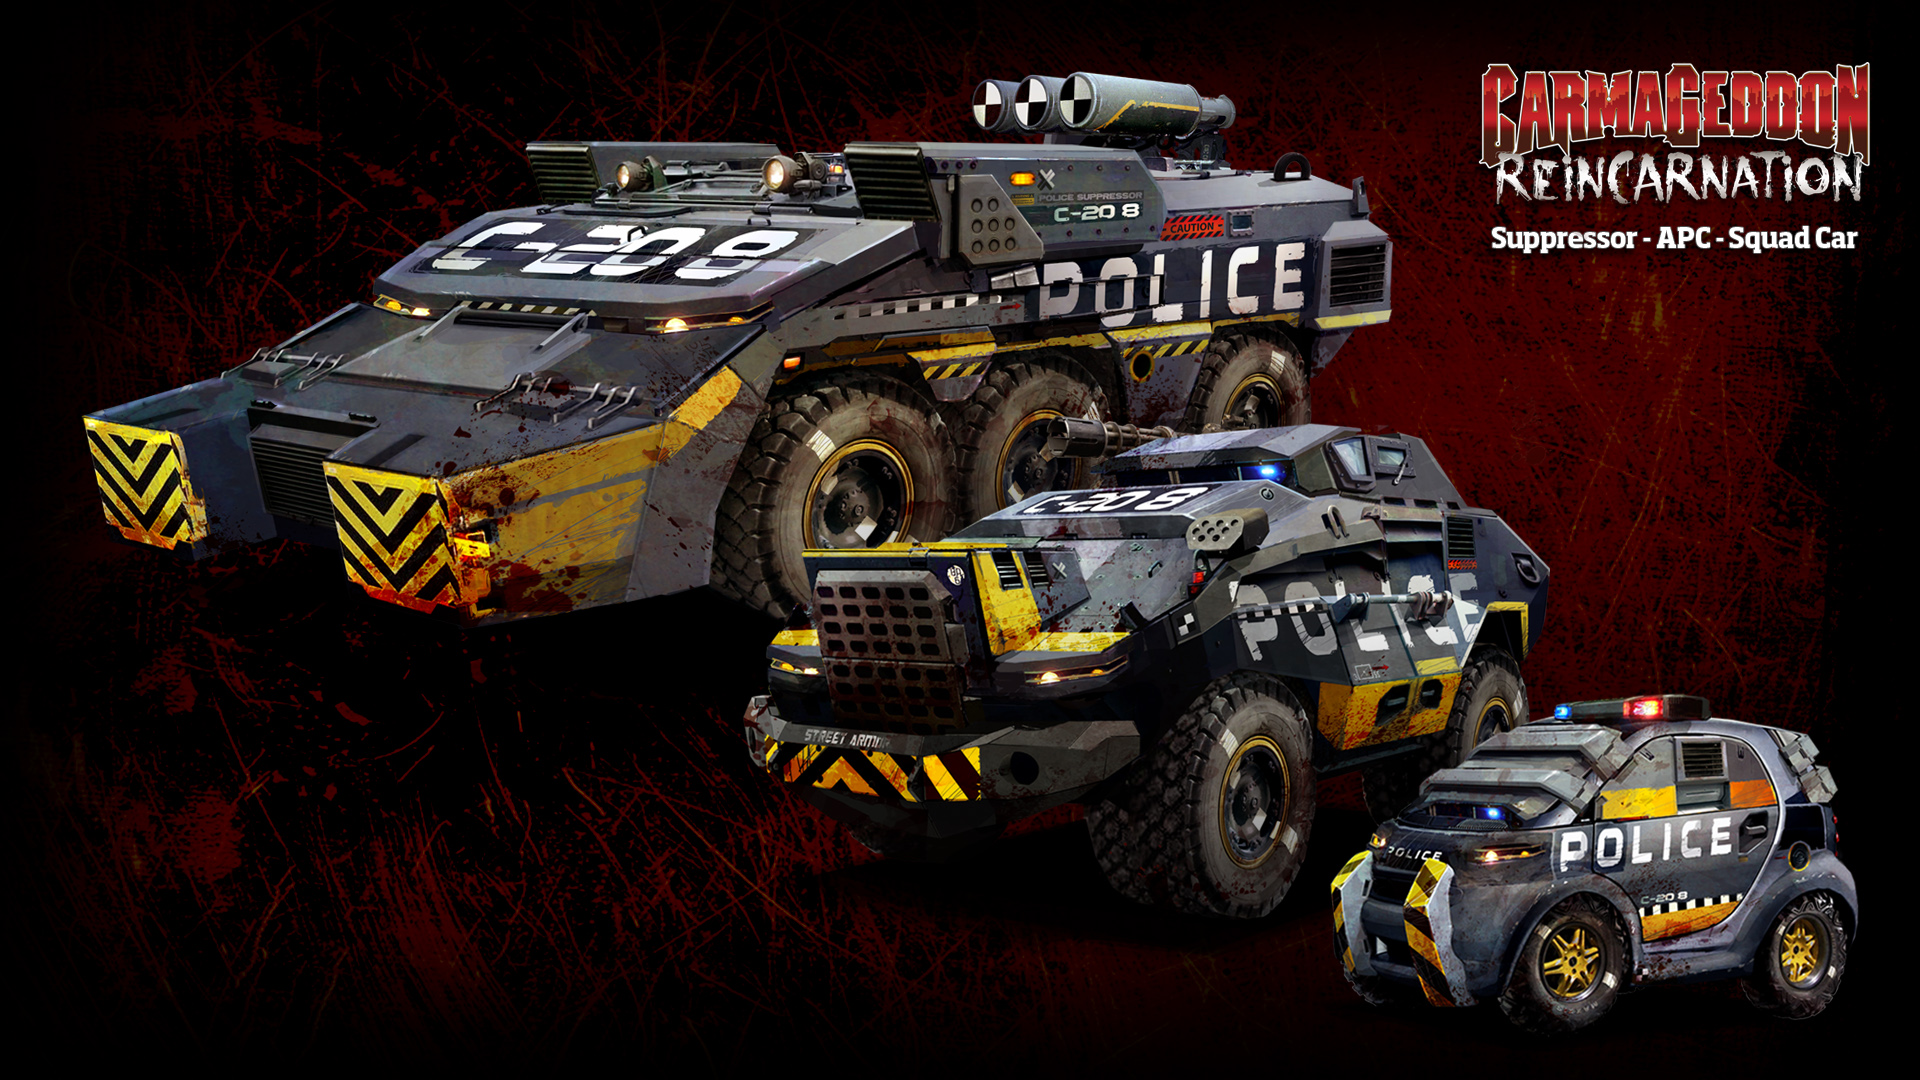 Carmageddon Reincarnation game police g wallpaper 1920x1080 1920x1080